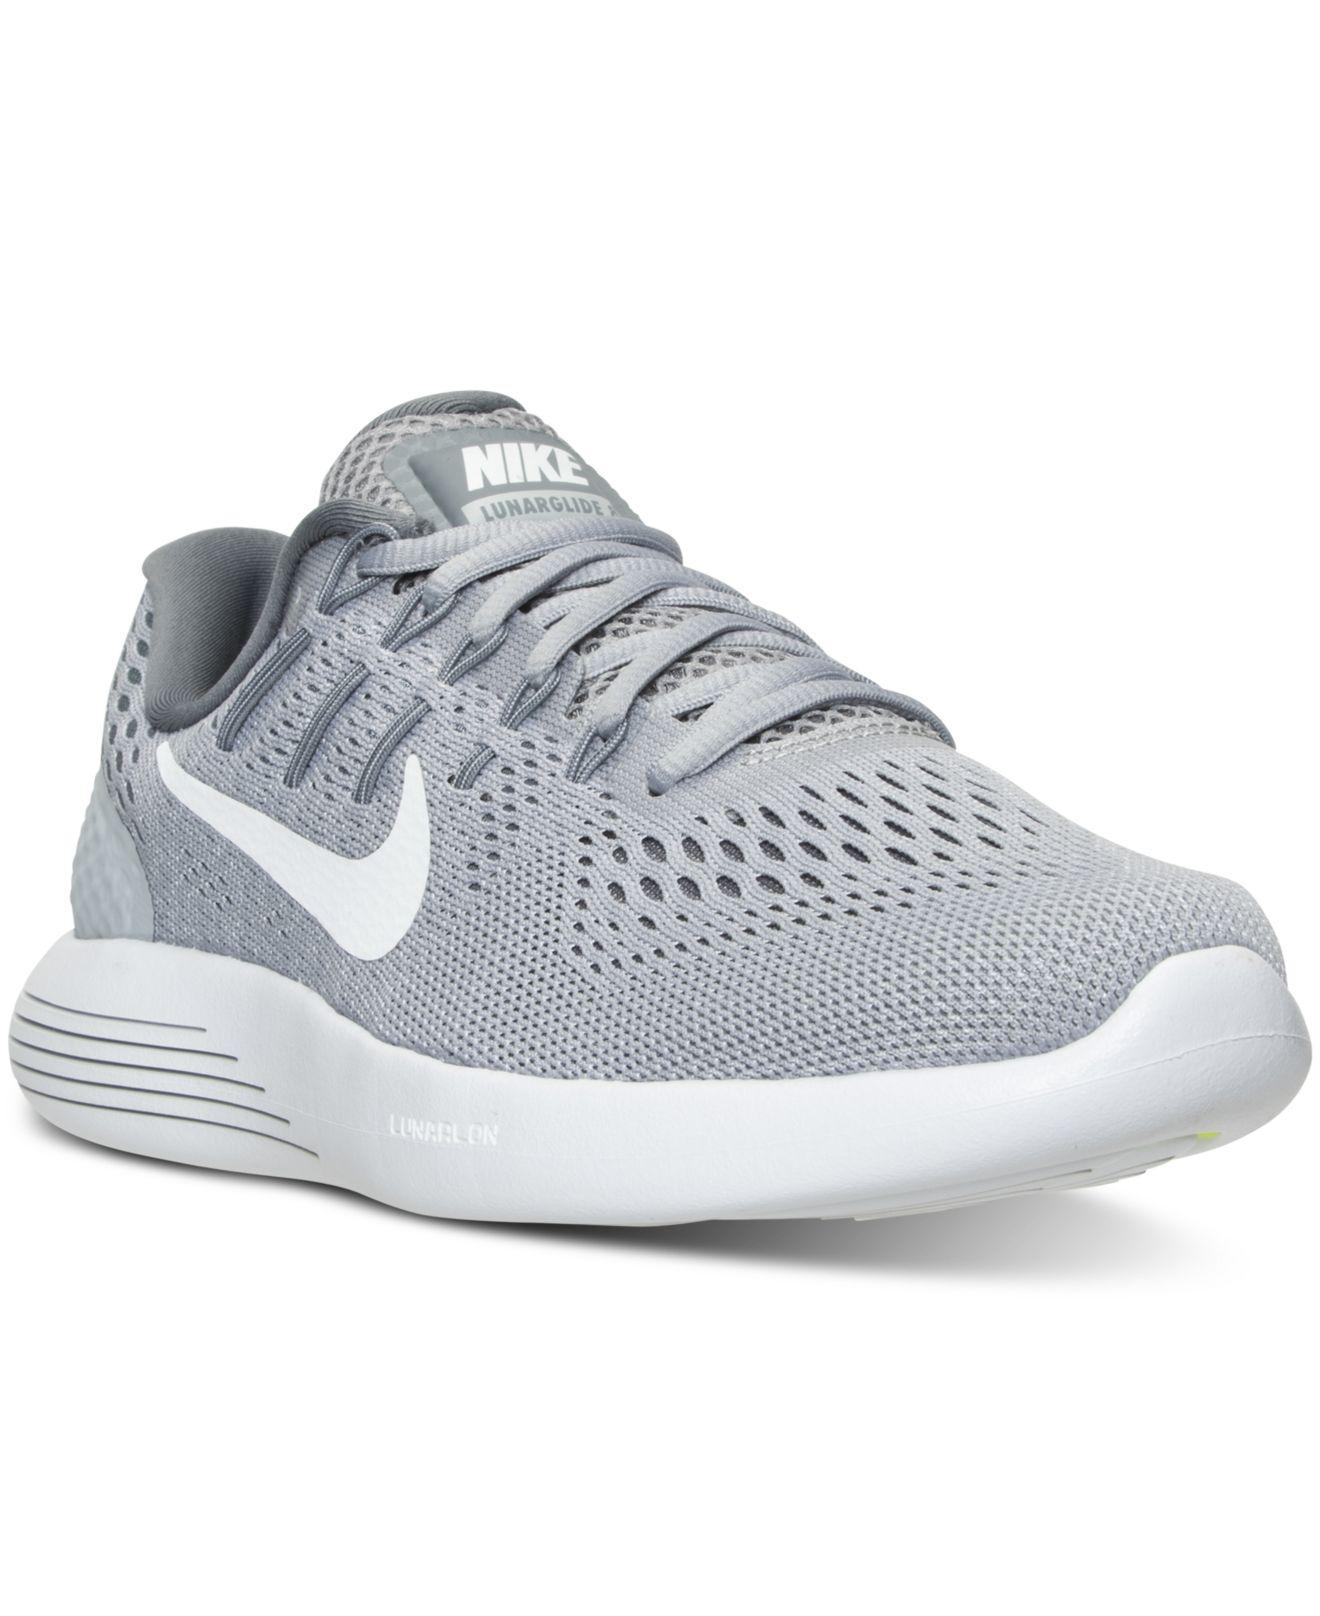 official photos 41e52 237bd Lyst - Nike Lunarglide 8 Running Sneakers From Finish Line in Gray